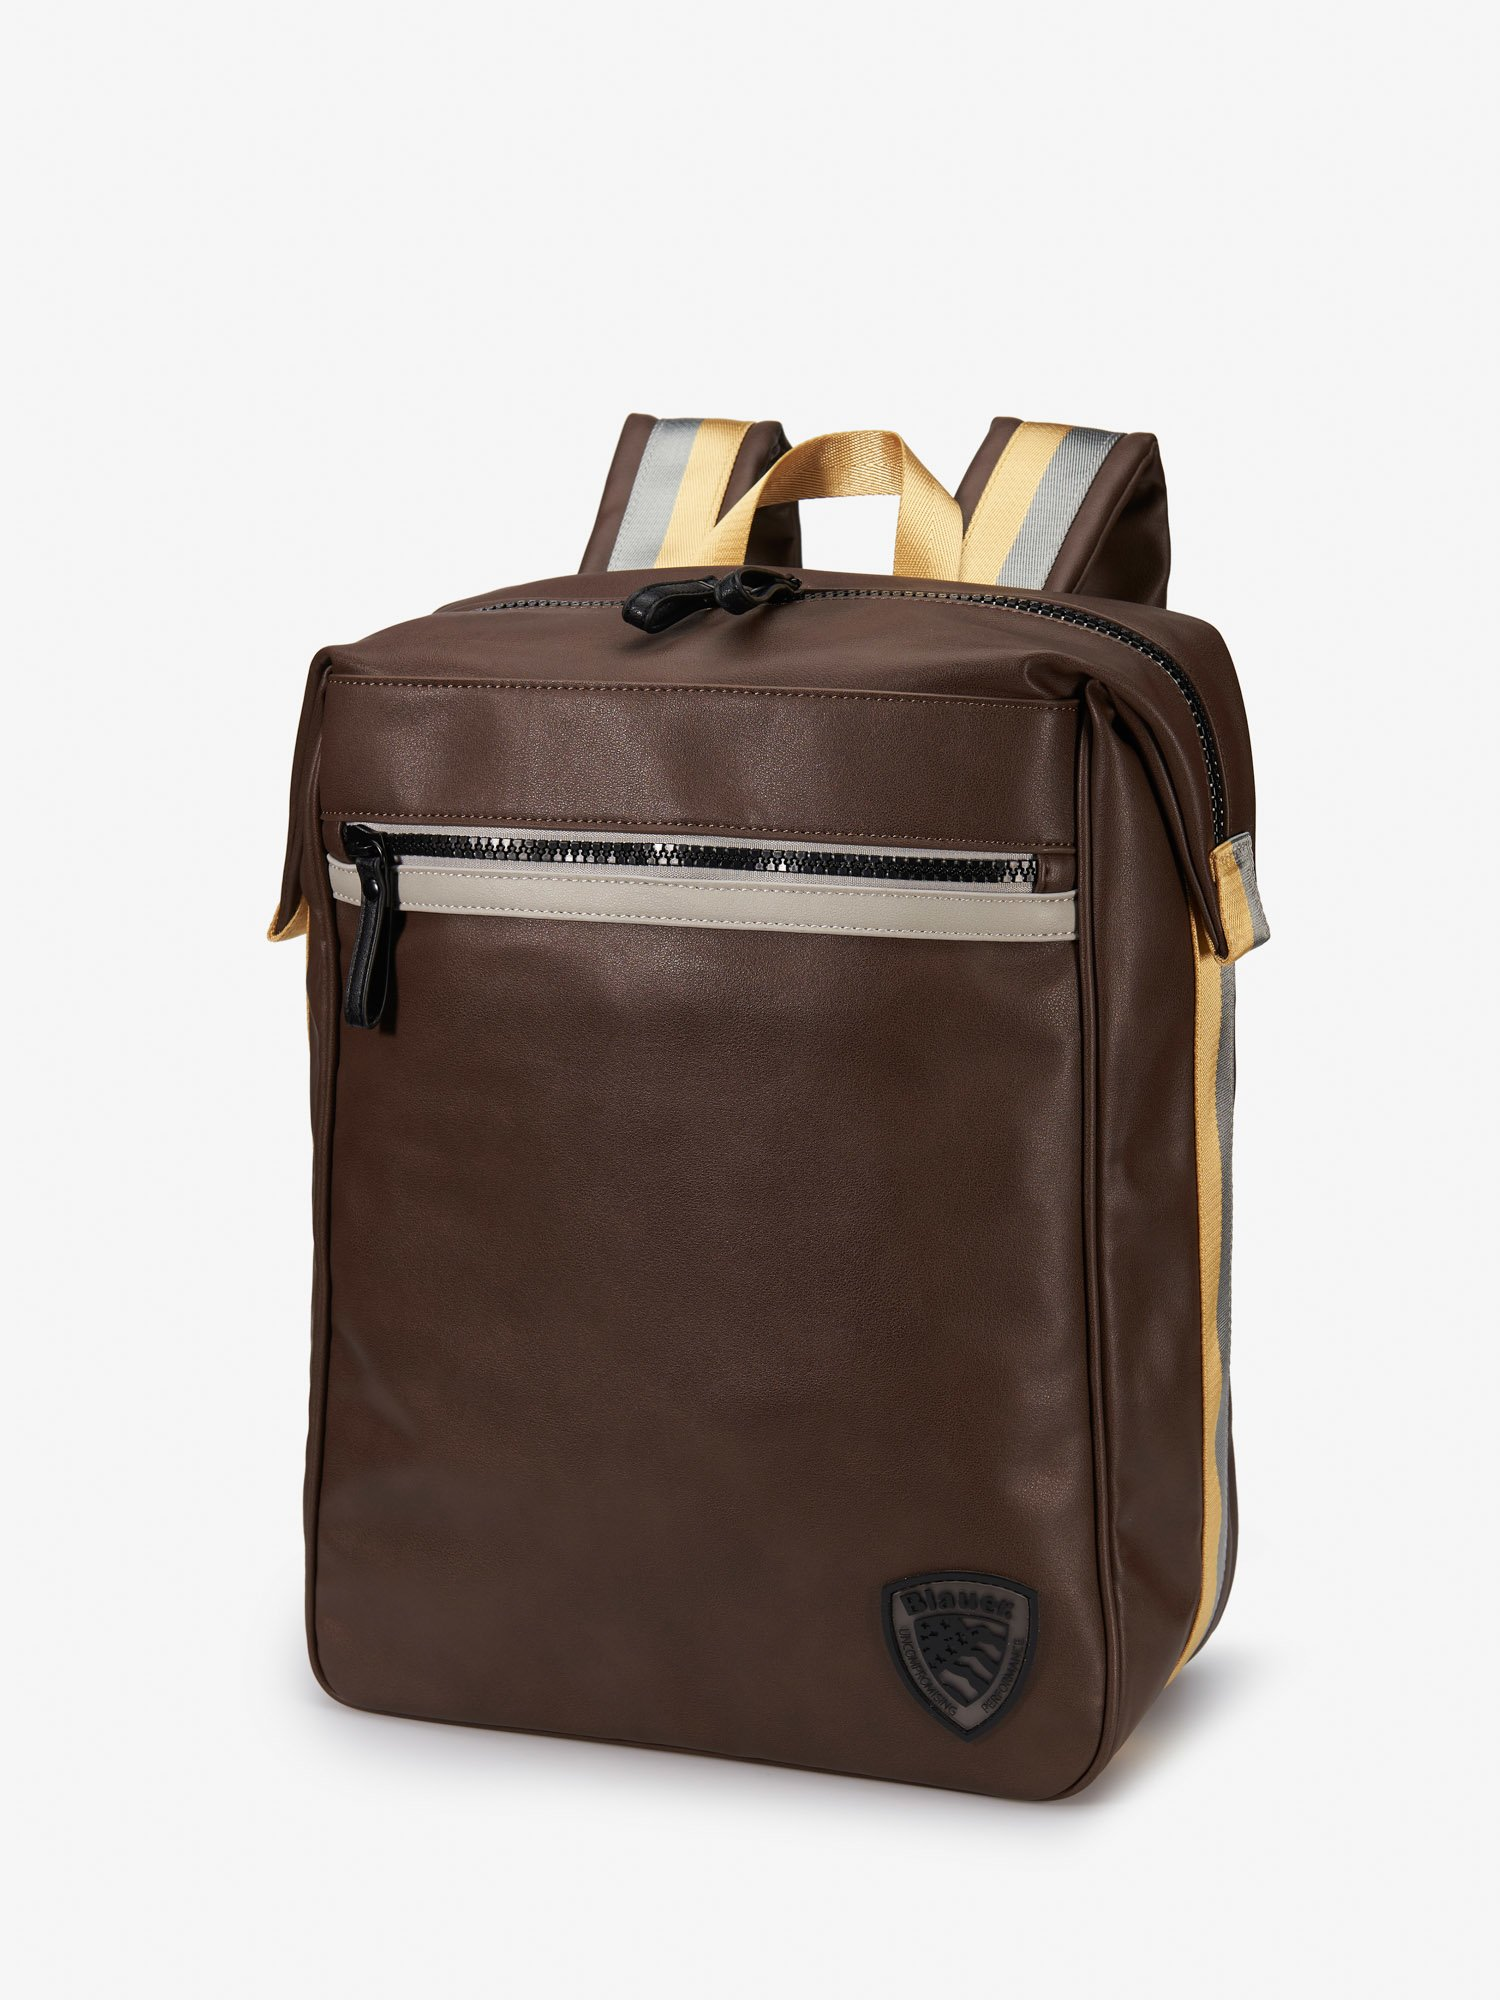 Blauer - BOWLING BACKPACK - chestnut brown - Blauer